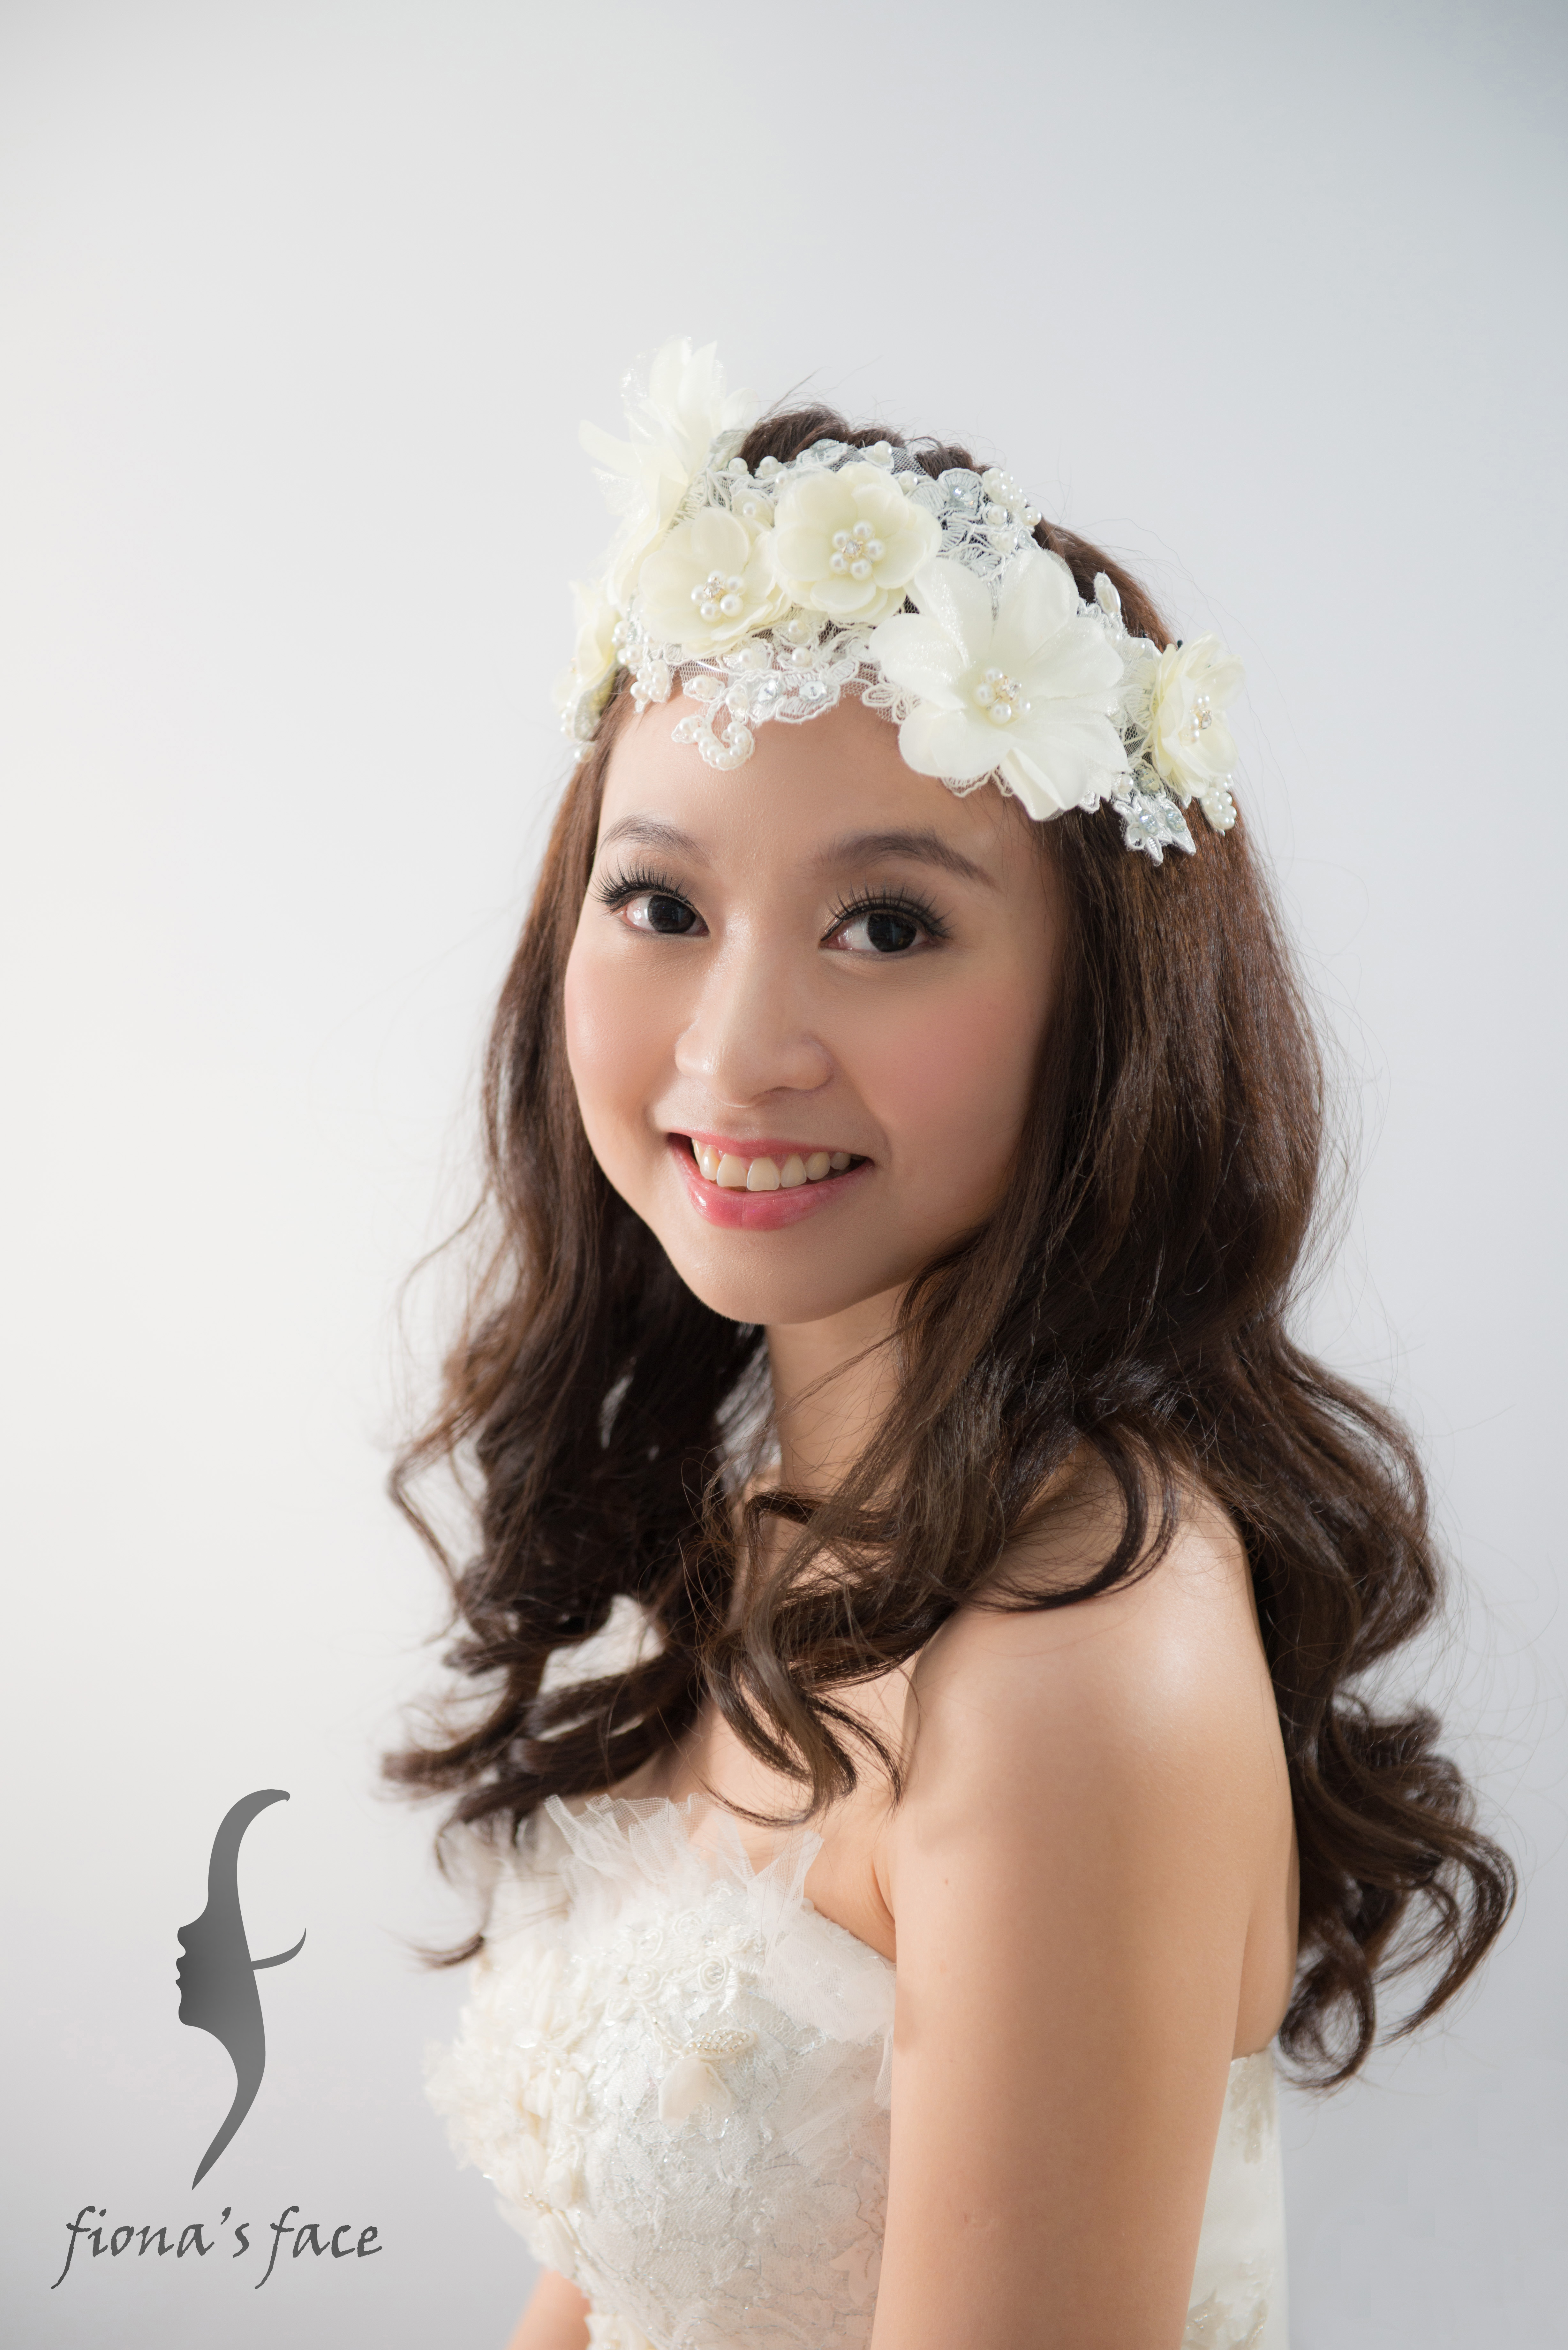 Romantic & Natural Long Curl hair with Nude makeup Fresh floral crown is another perfect match 花仙子自然全放下浪漫曲髮造型 既自然耐看及年輕 另可配鮮花花環